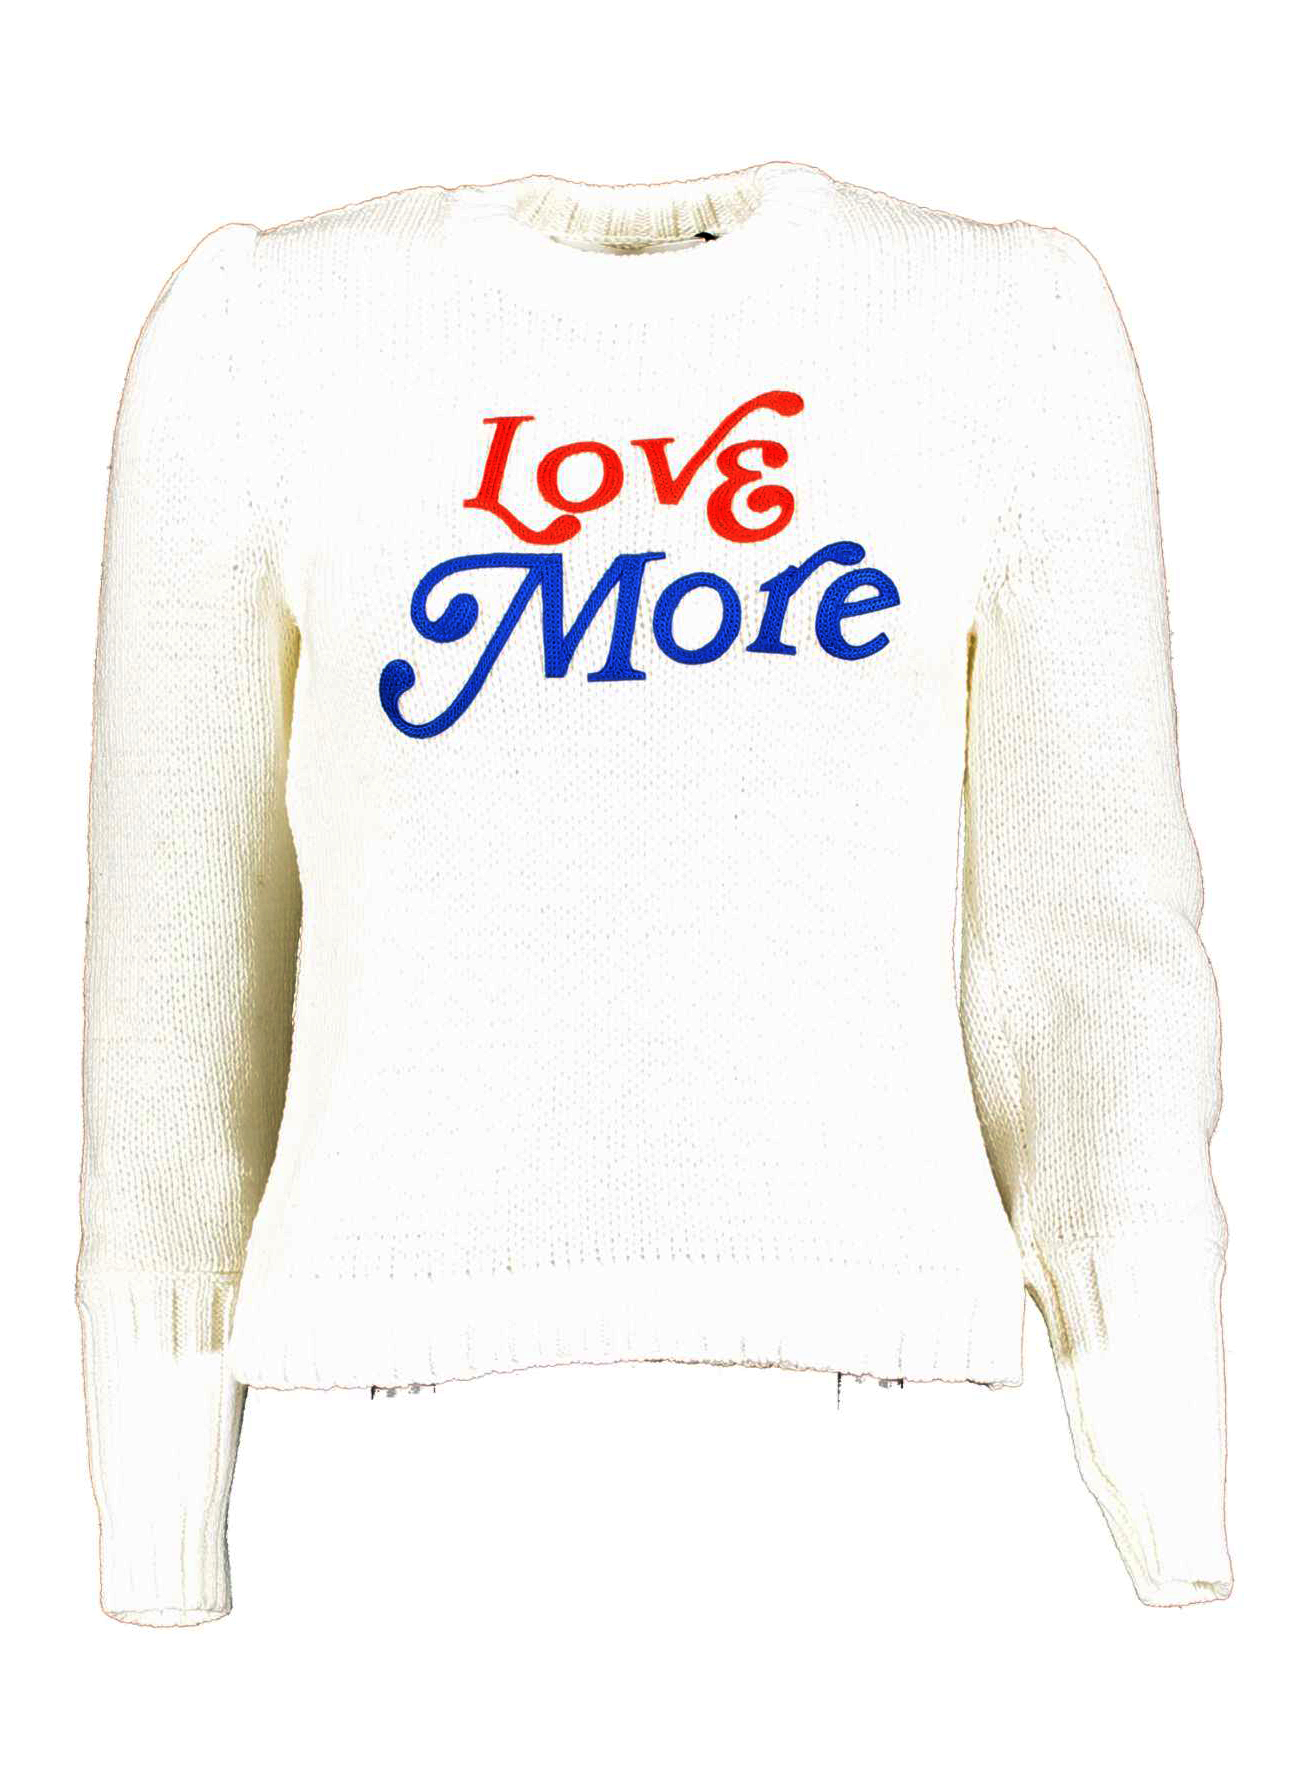 love more _Front_M1500x15000JPG